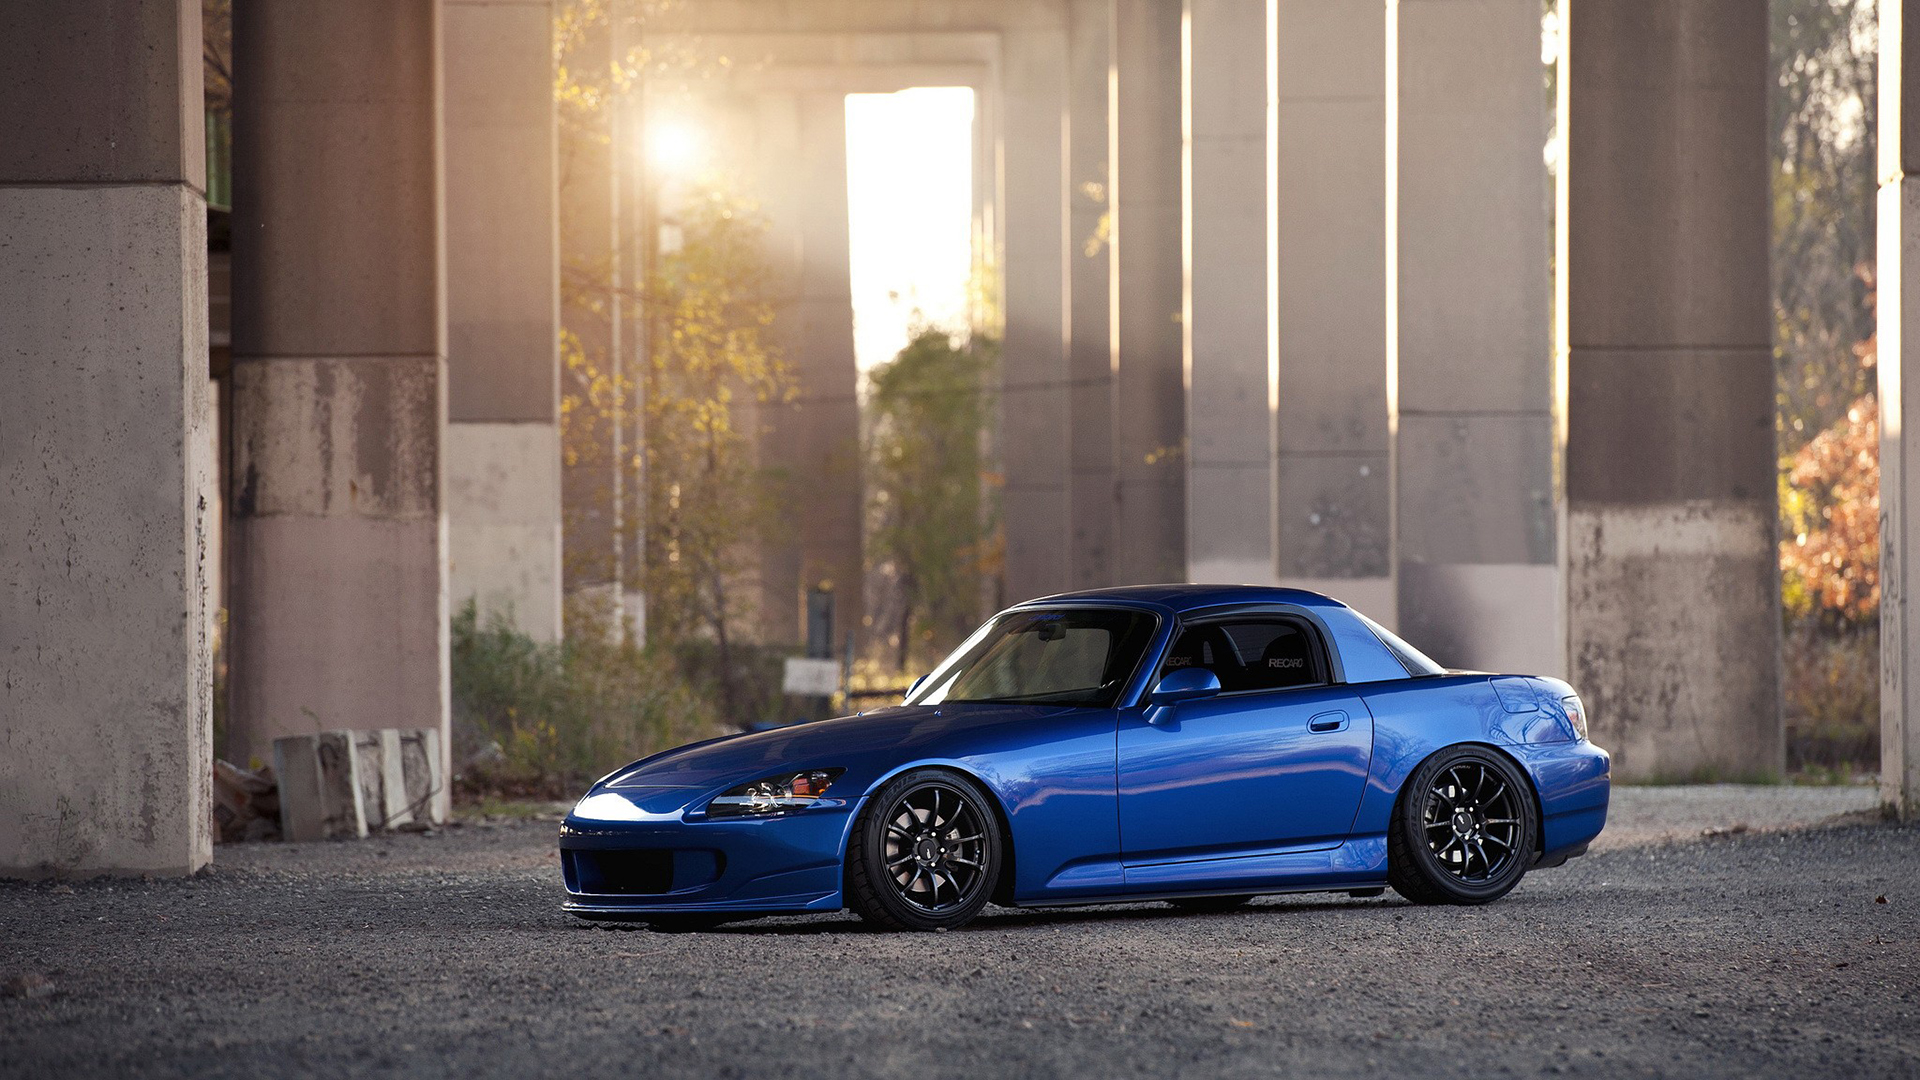 Fast And Furious Cars Wallpaper Free Download Honda S2000 Hd Wallpaper Hd Latest Wallpapers